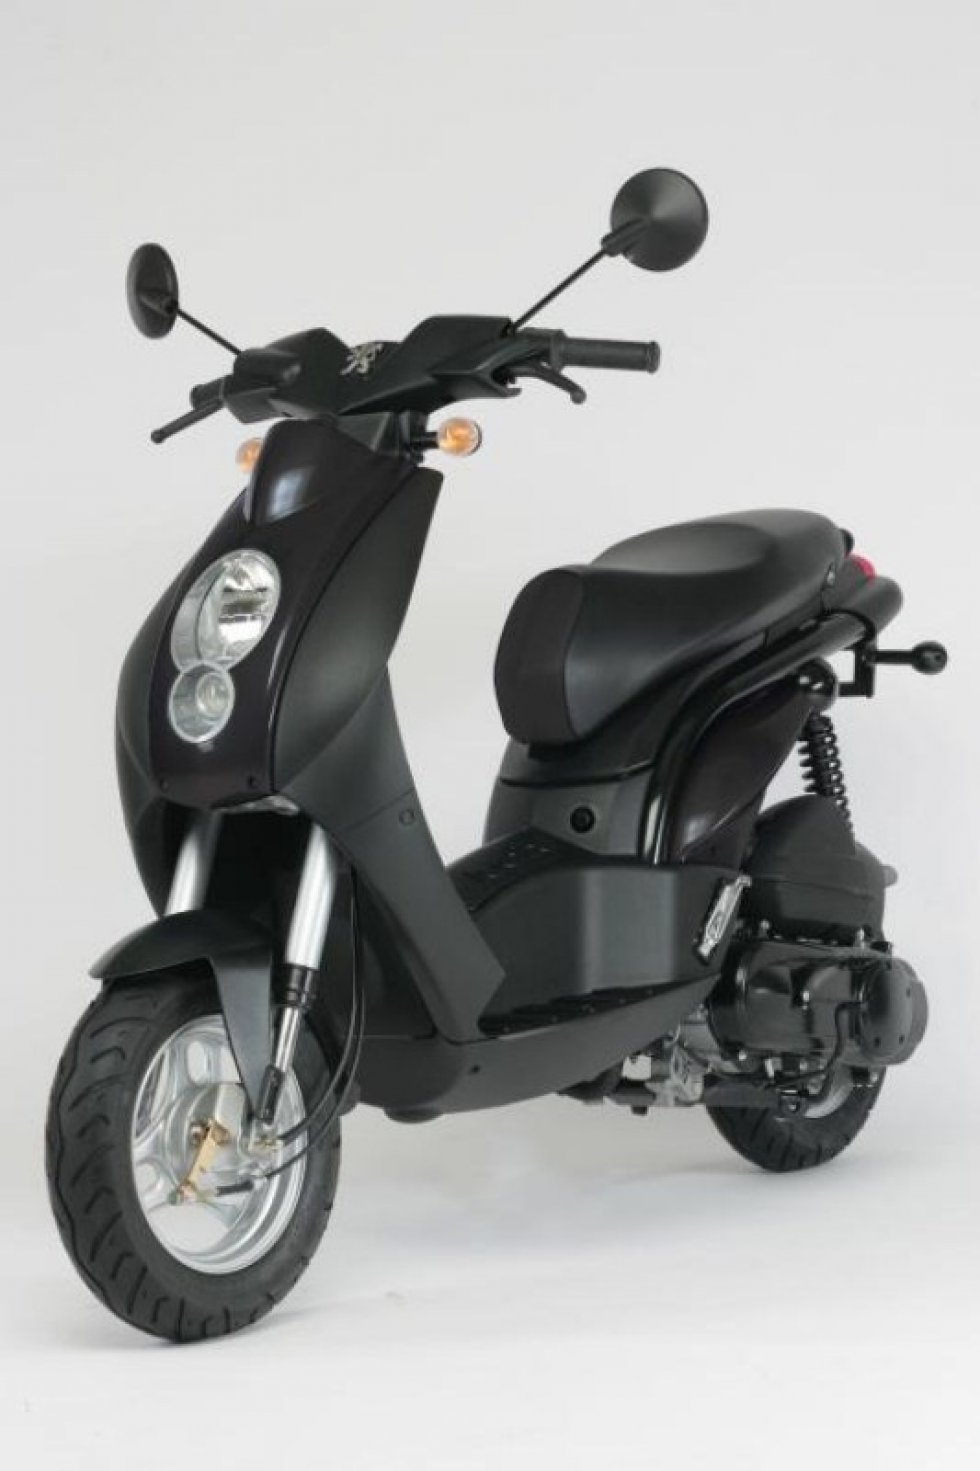 scooter neuf peugeot ludix one bi places 50cc vente scooter la seyne sur mer toulon l. Black Bedroom Furniture Sets. Home Design Ideas